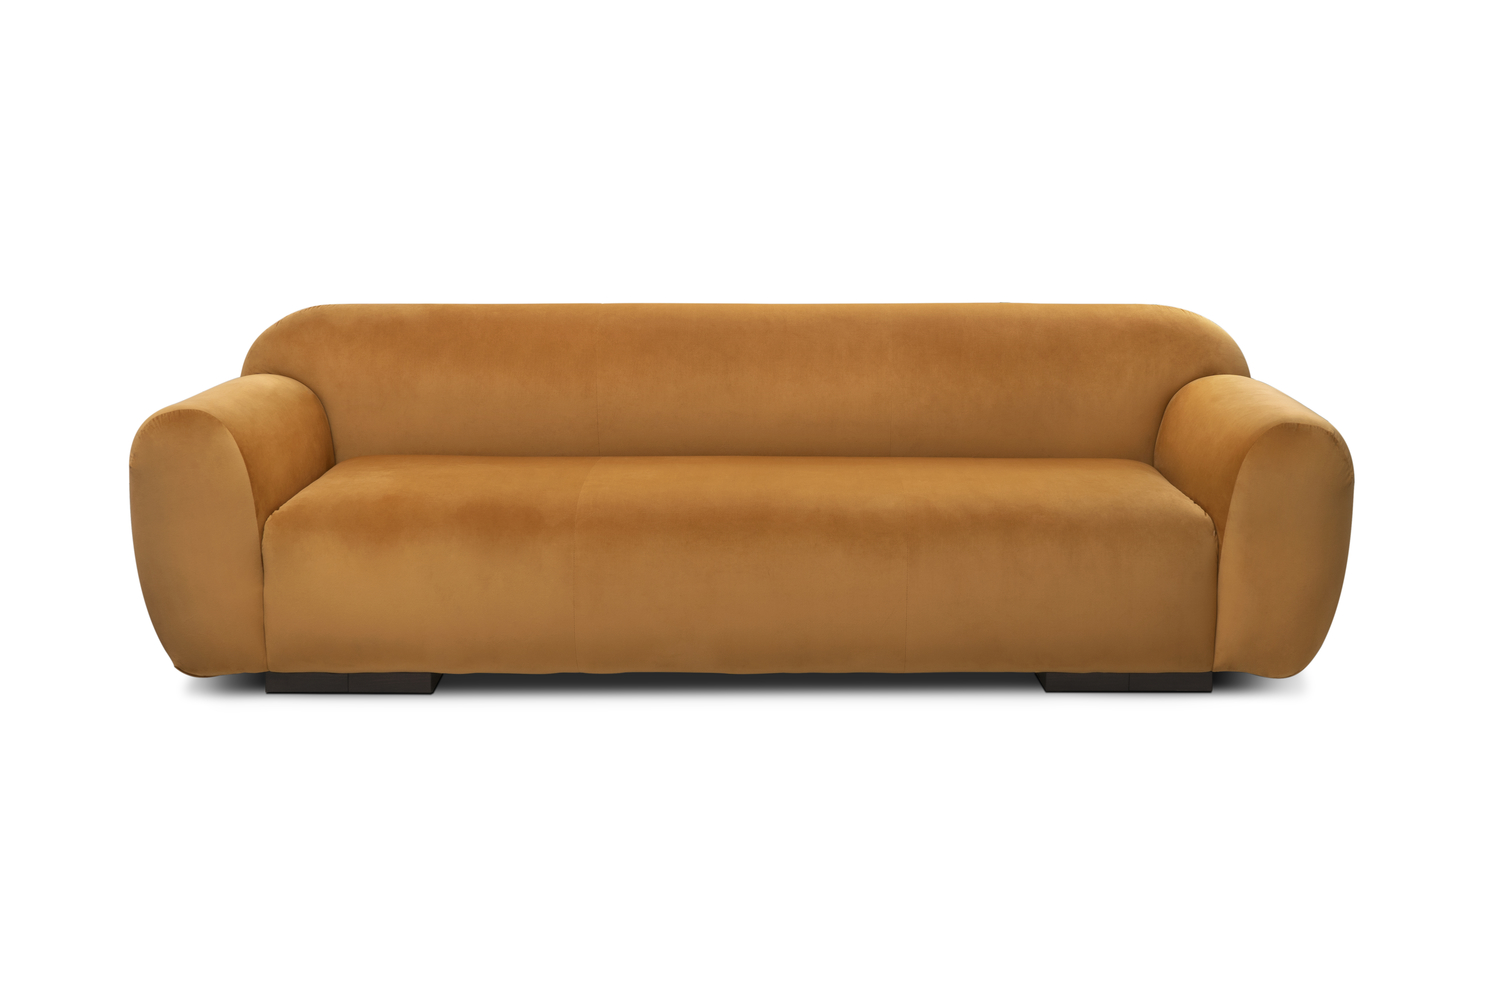 didier gomez, design  didier gomez Didier Gomez: The Art Of Design otter sofa 2